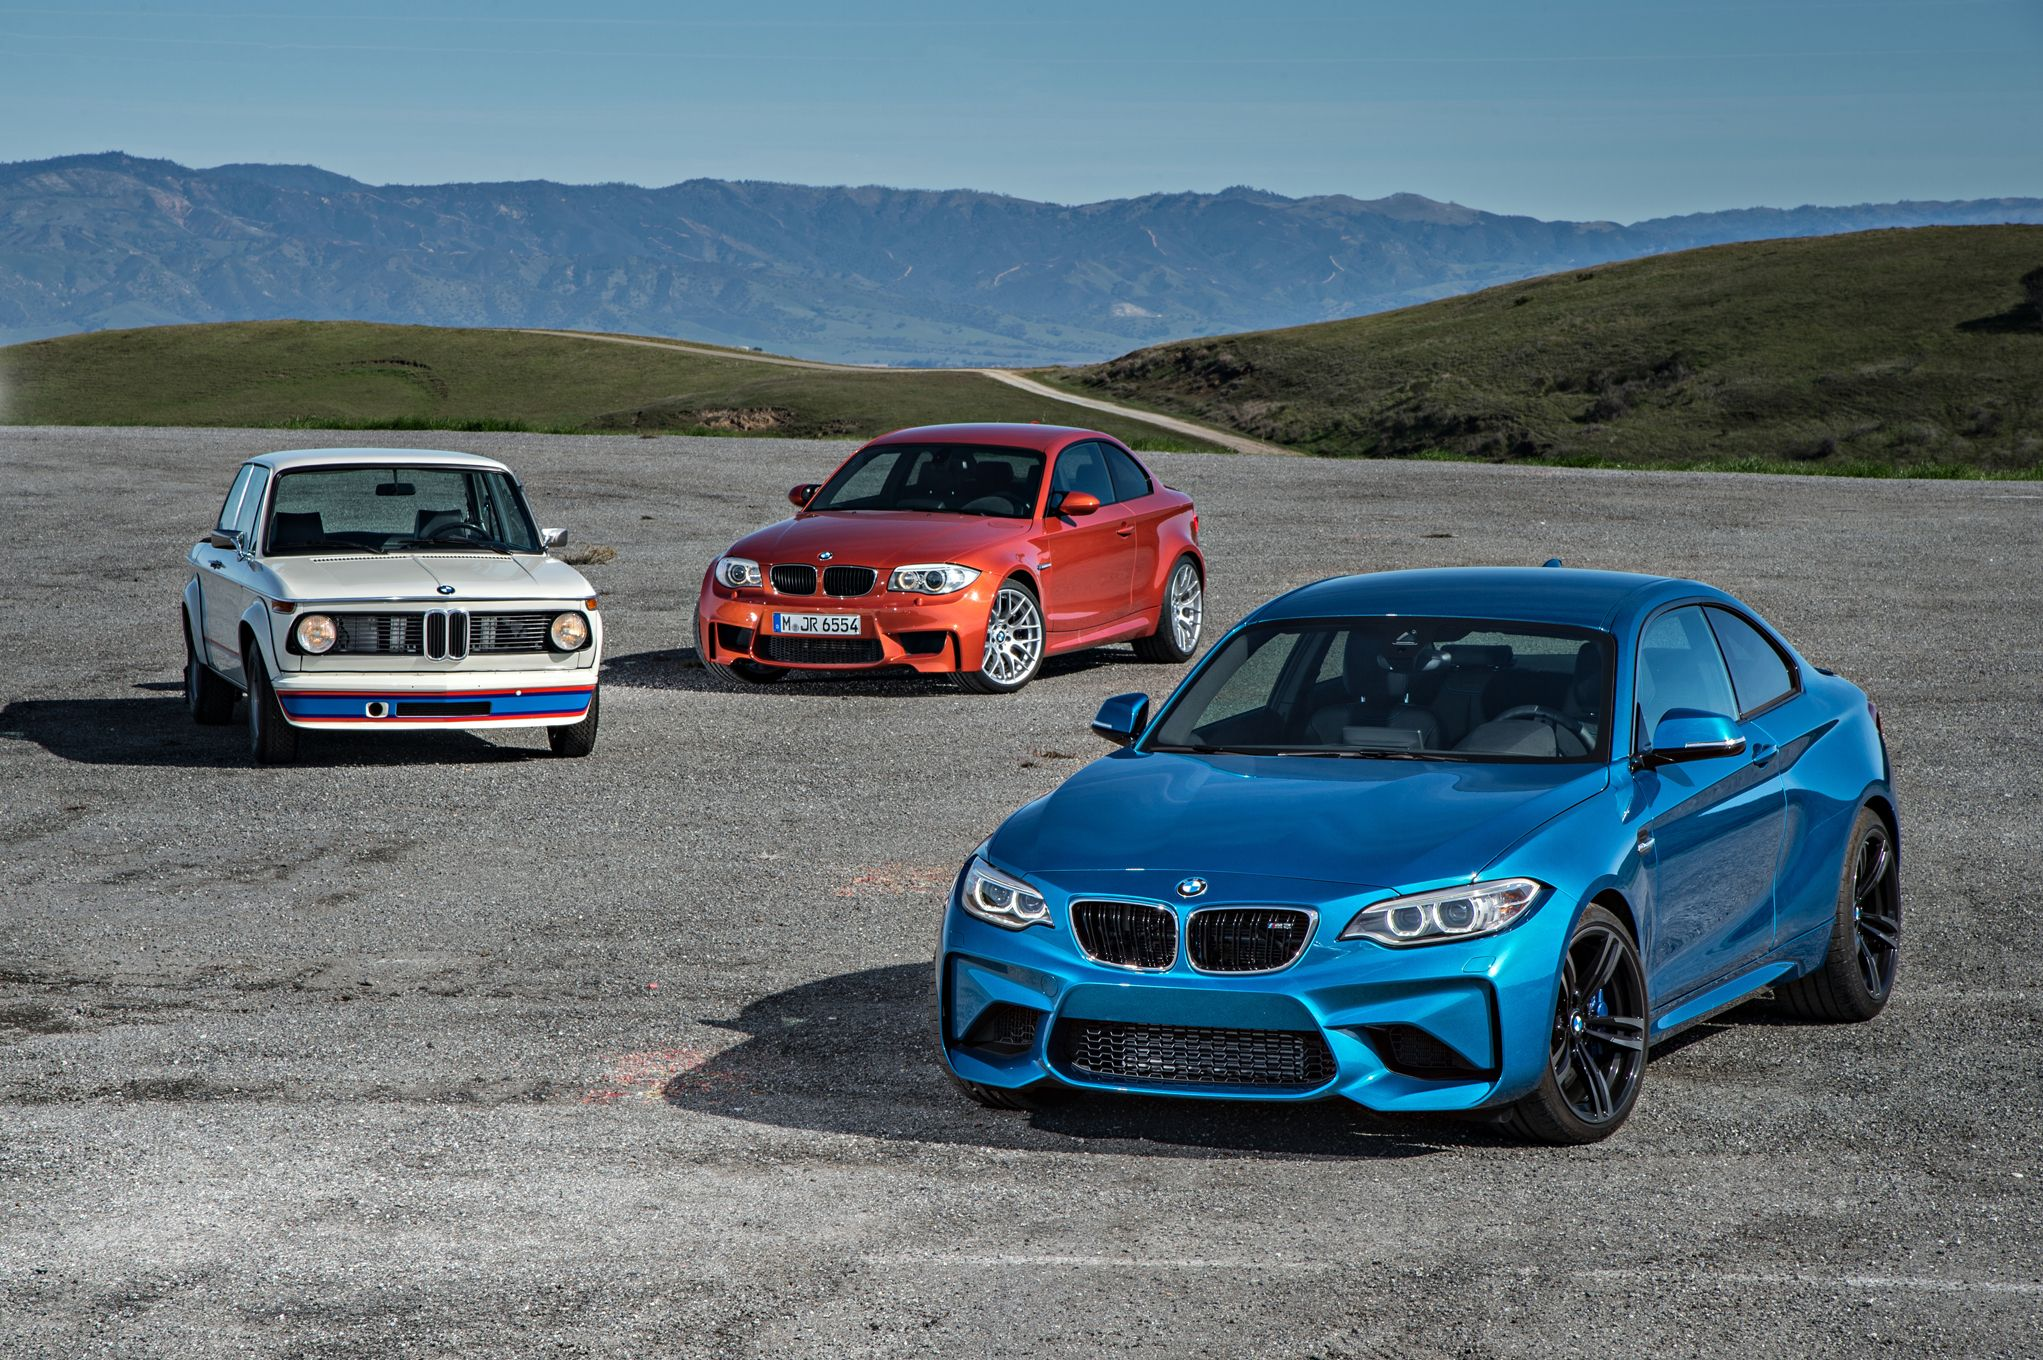 2016-bmw-m2-bmw-2002-turbo-and-bmw-1-series-m-coupe-front-three-quarter-02.jpg